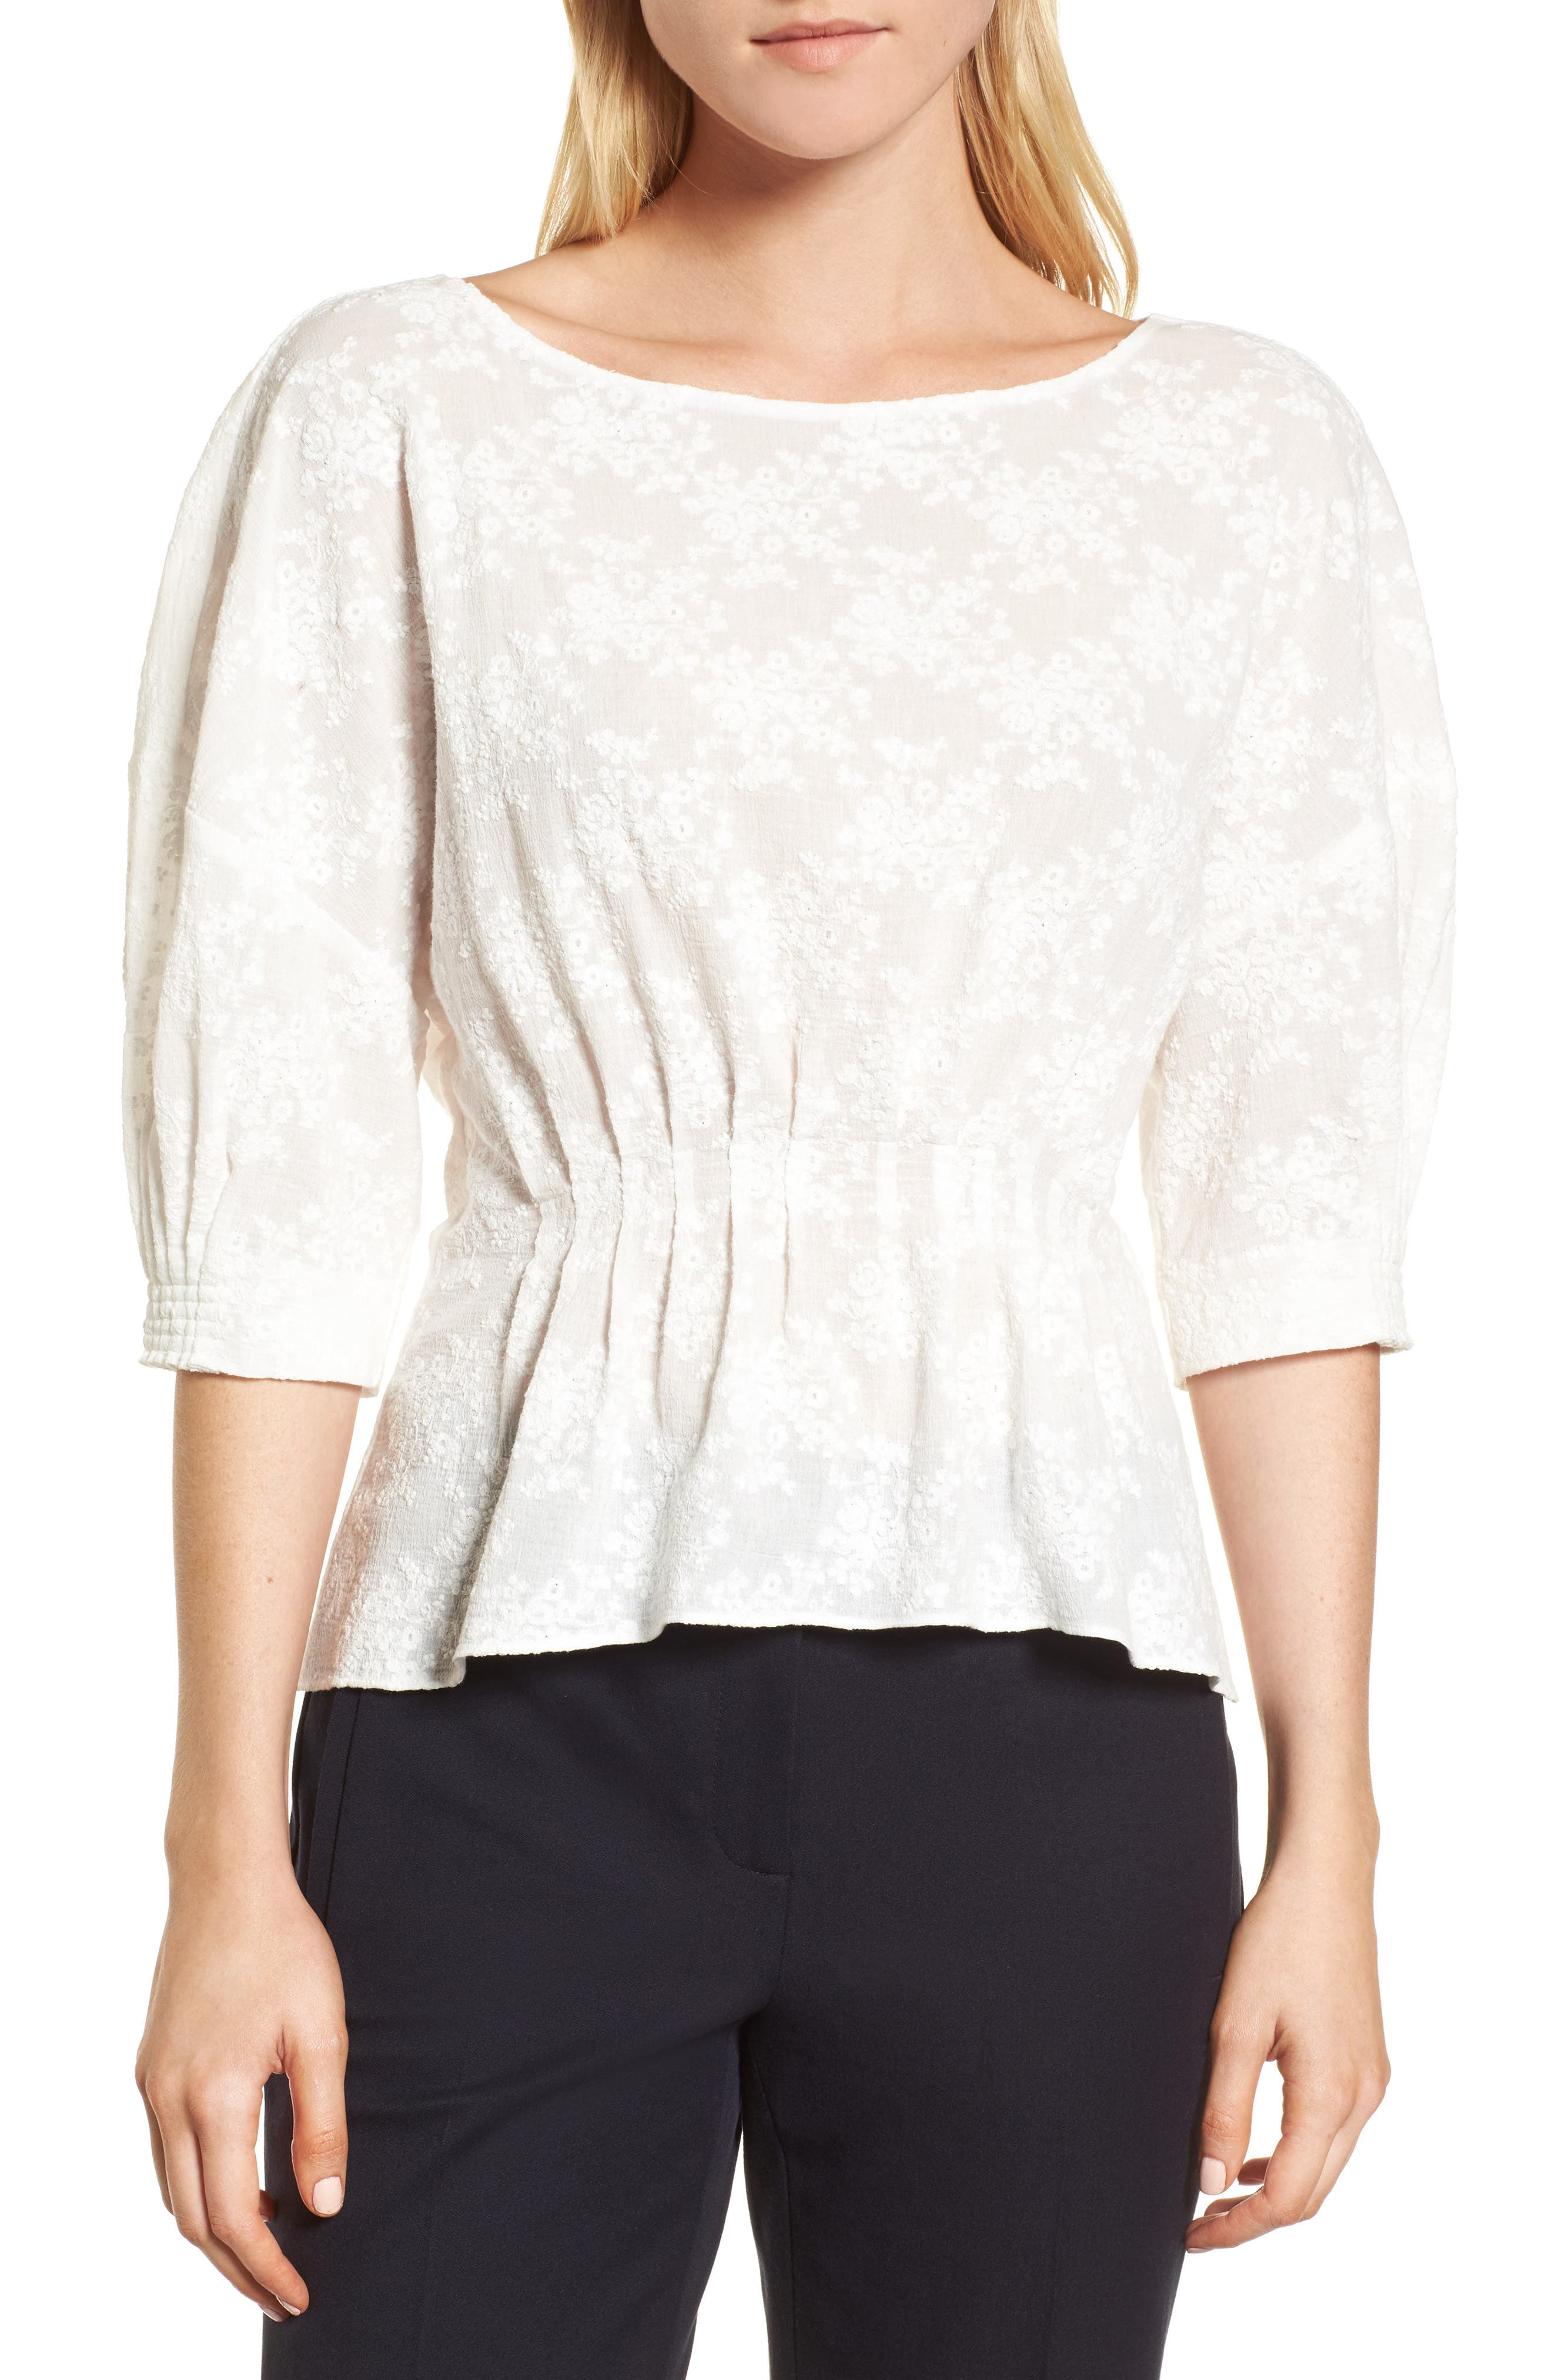 NORDSTROM SIGNATURE Embroidered Tucked Top, Main, color, 100